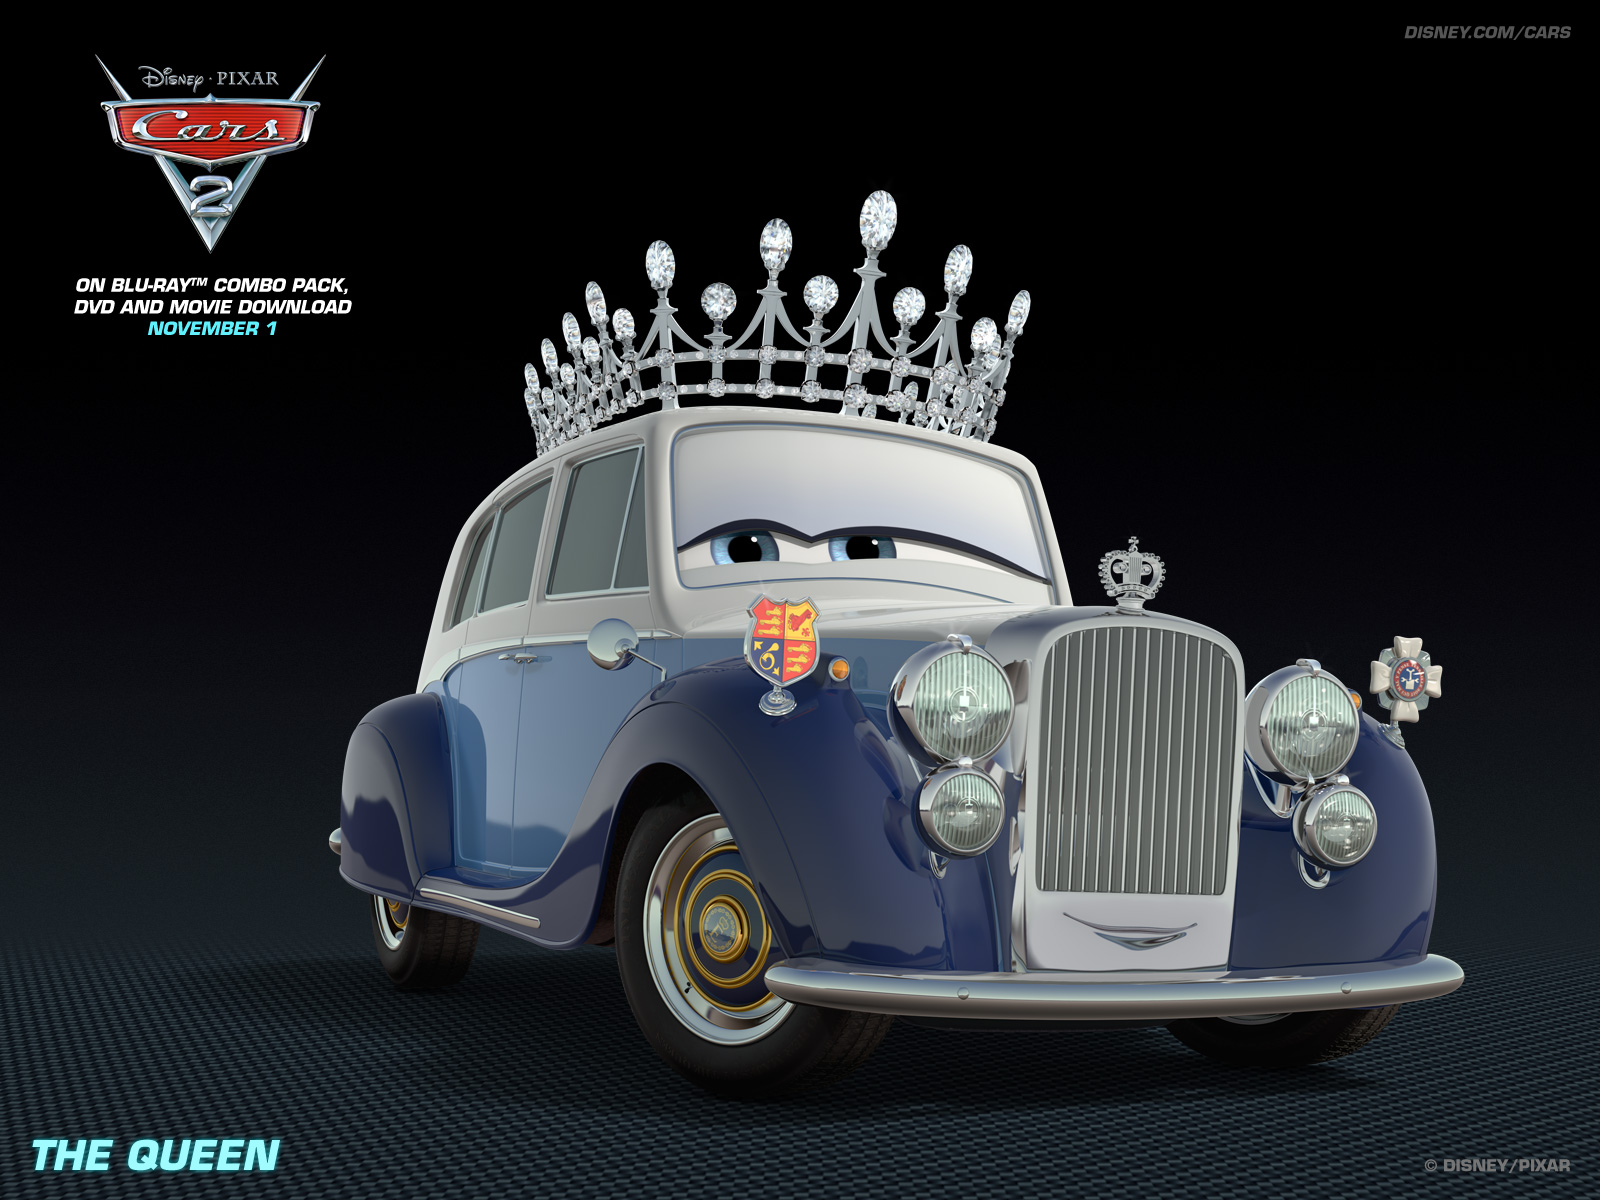 Queen   Disney Pixar Cars 2 Wallpaper 28399864 1600x1200